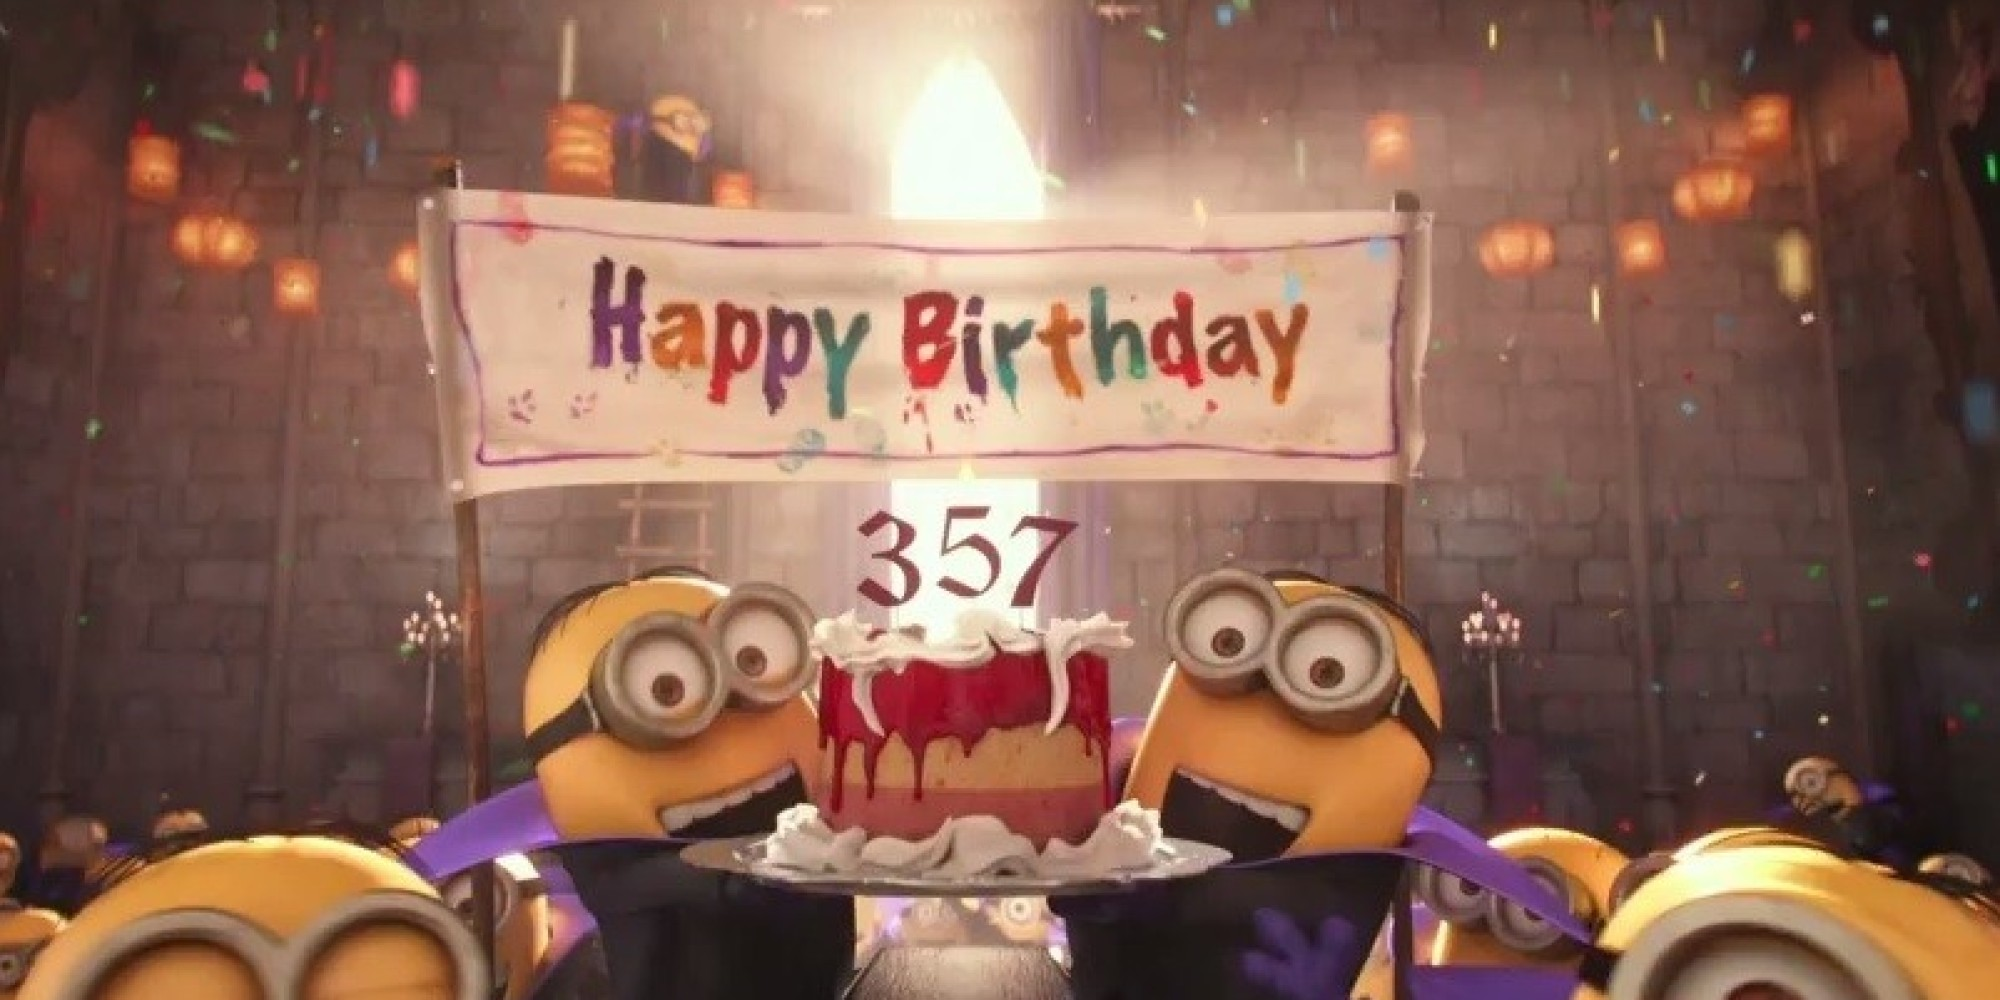 Minions film trailer despicable me spin off preview unveiled